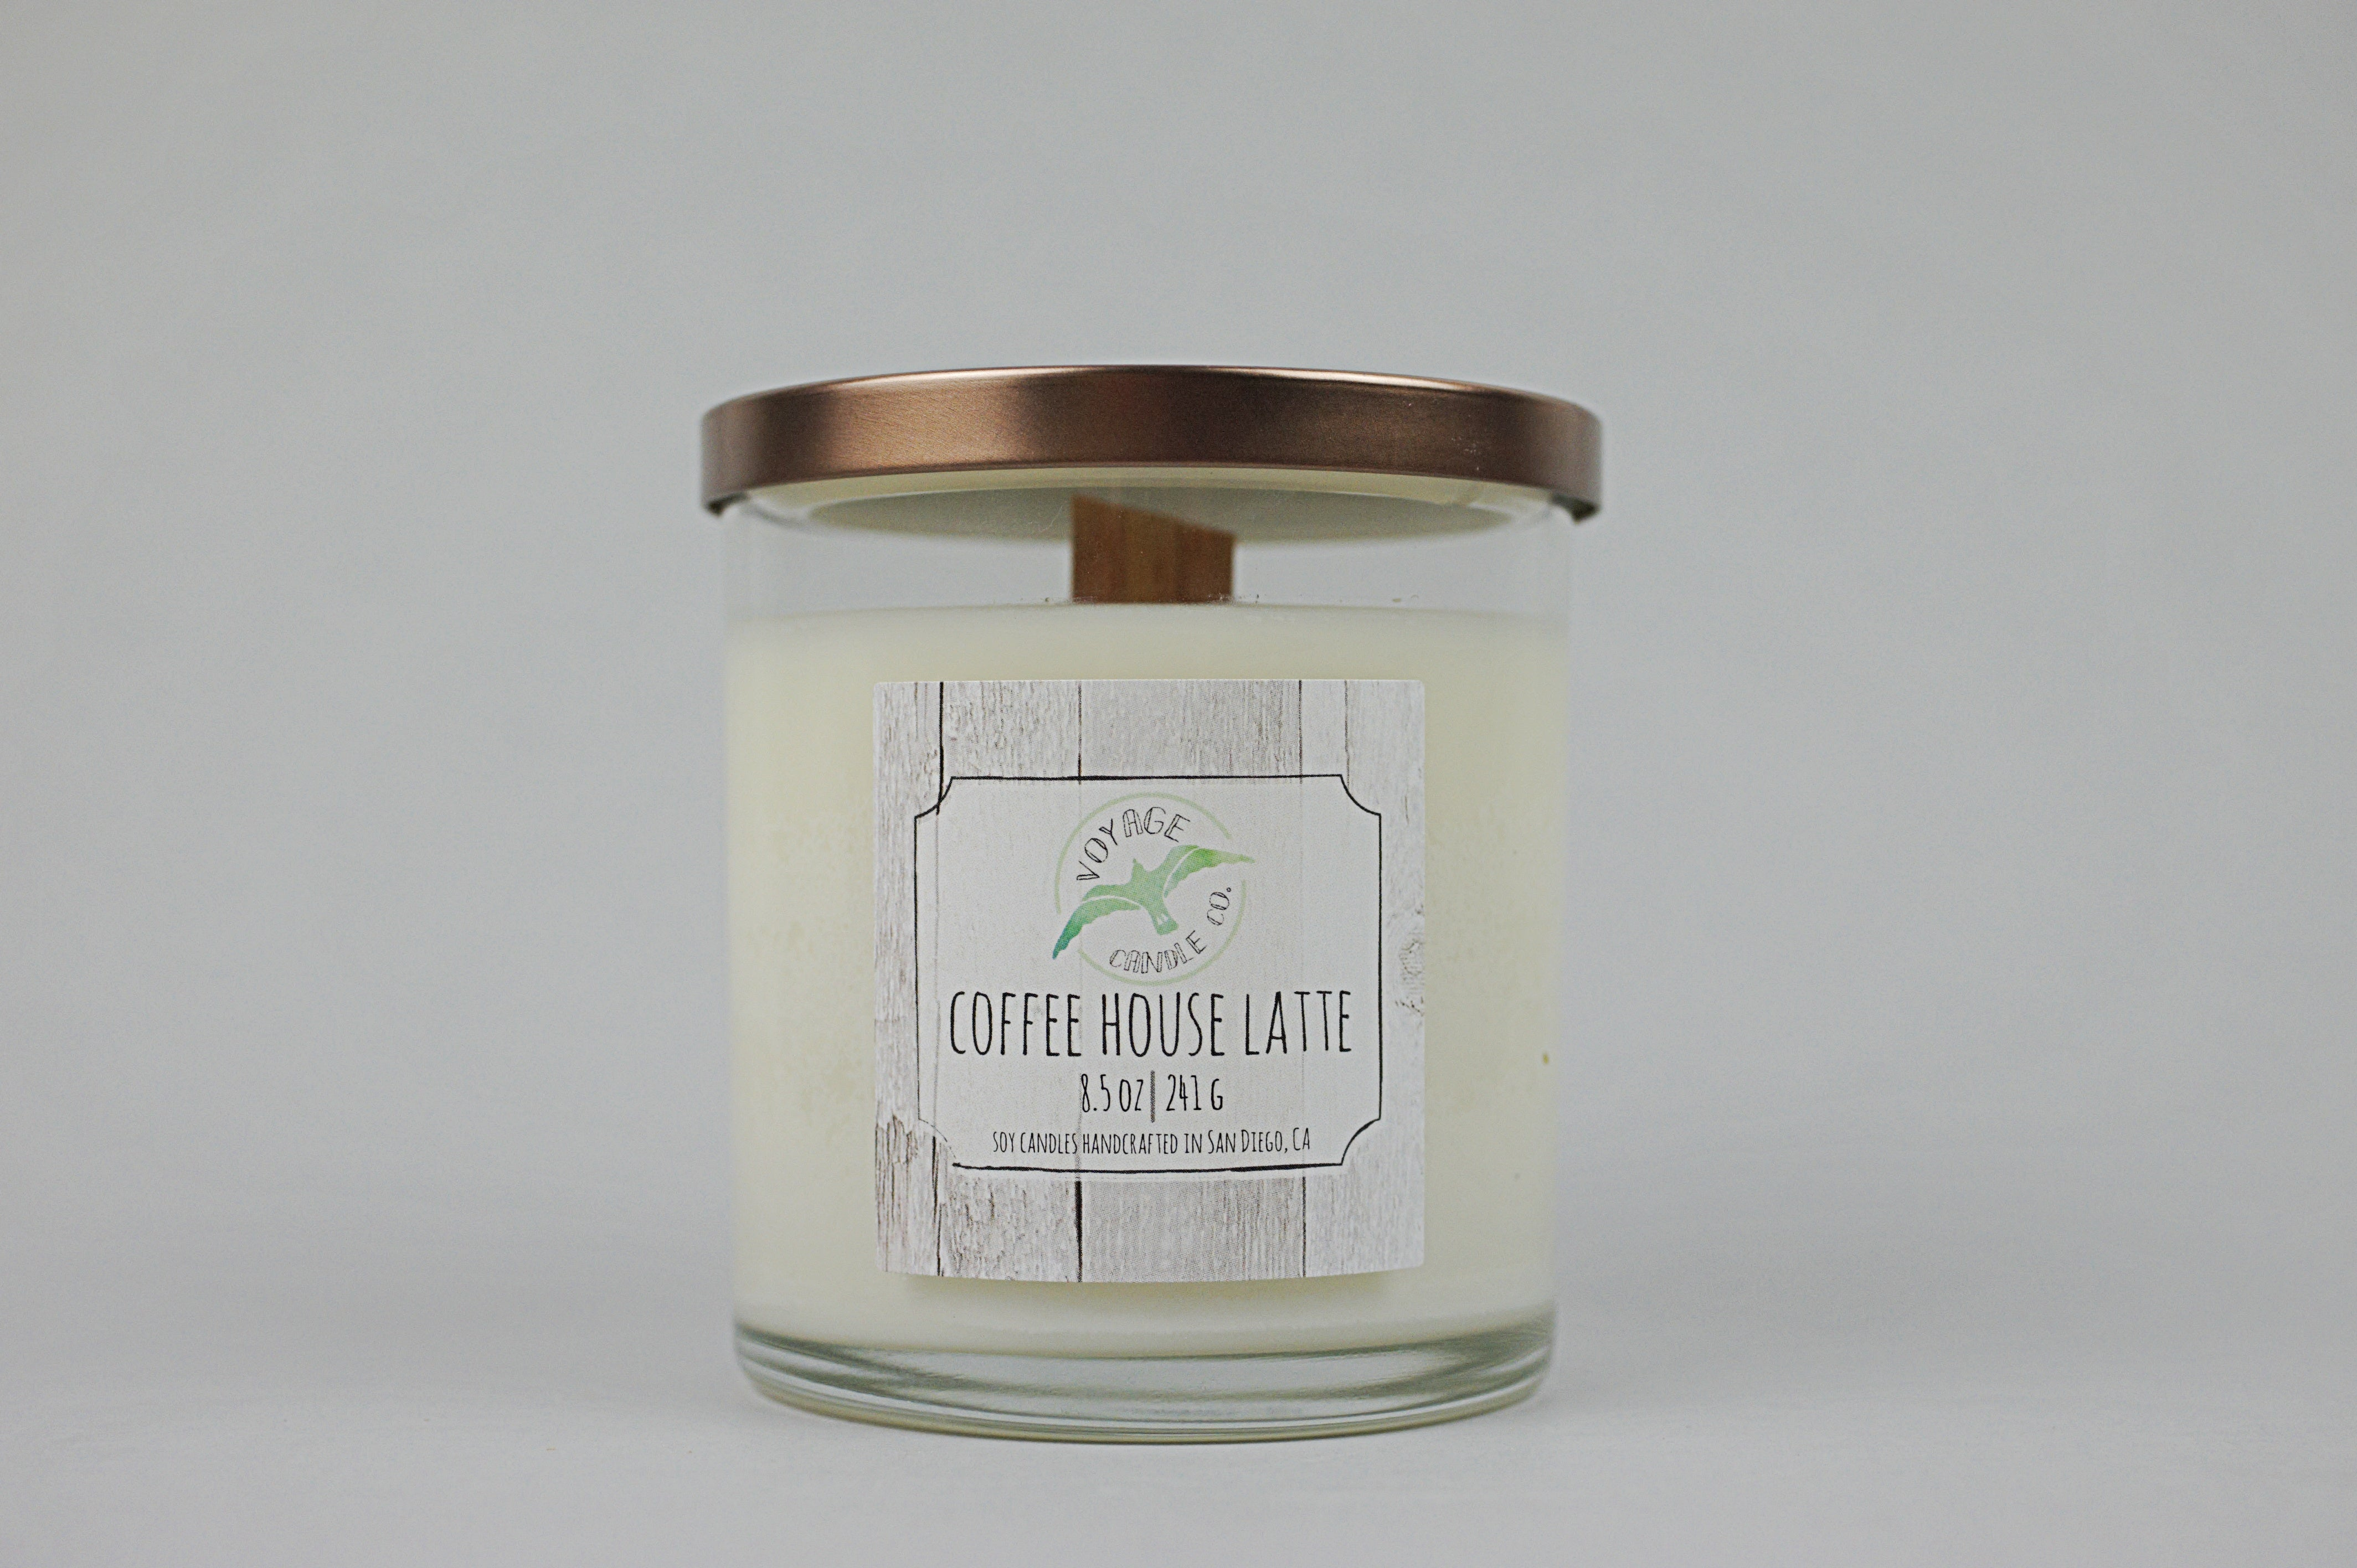 Coffee House Latte - Wood Wick - Voyage Candle Co.